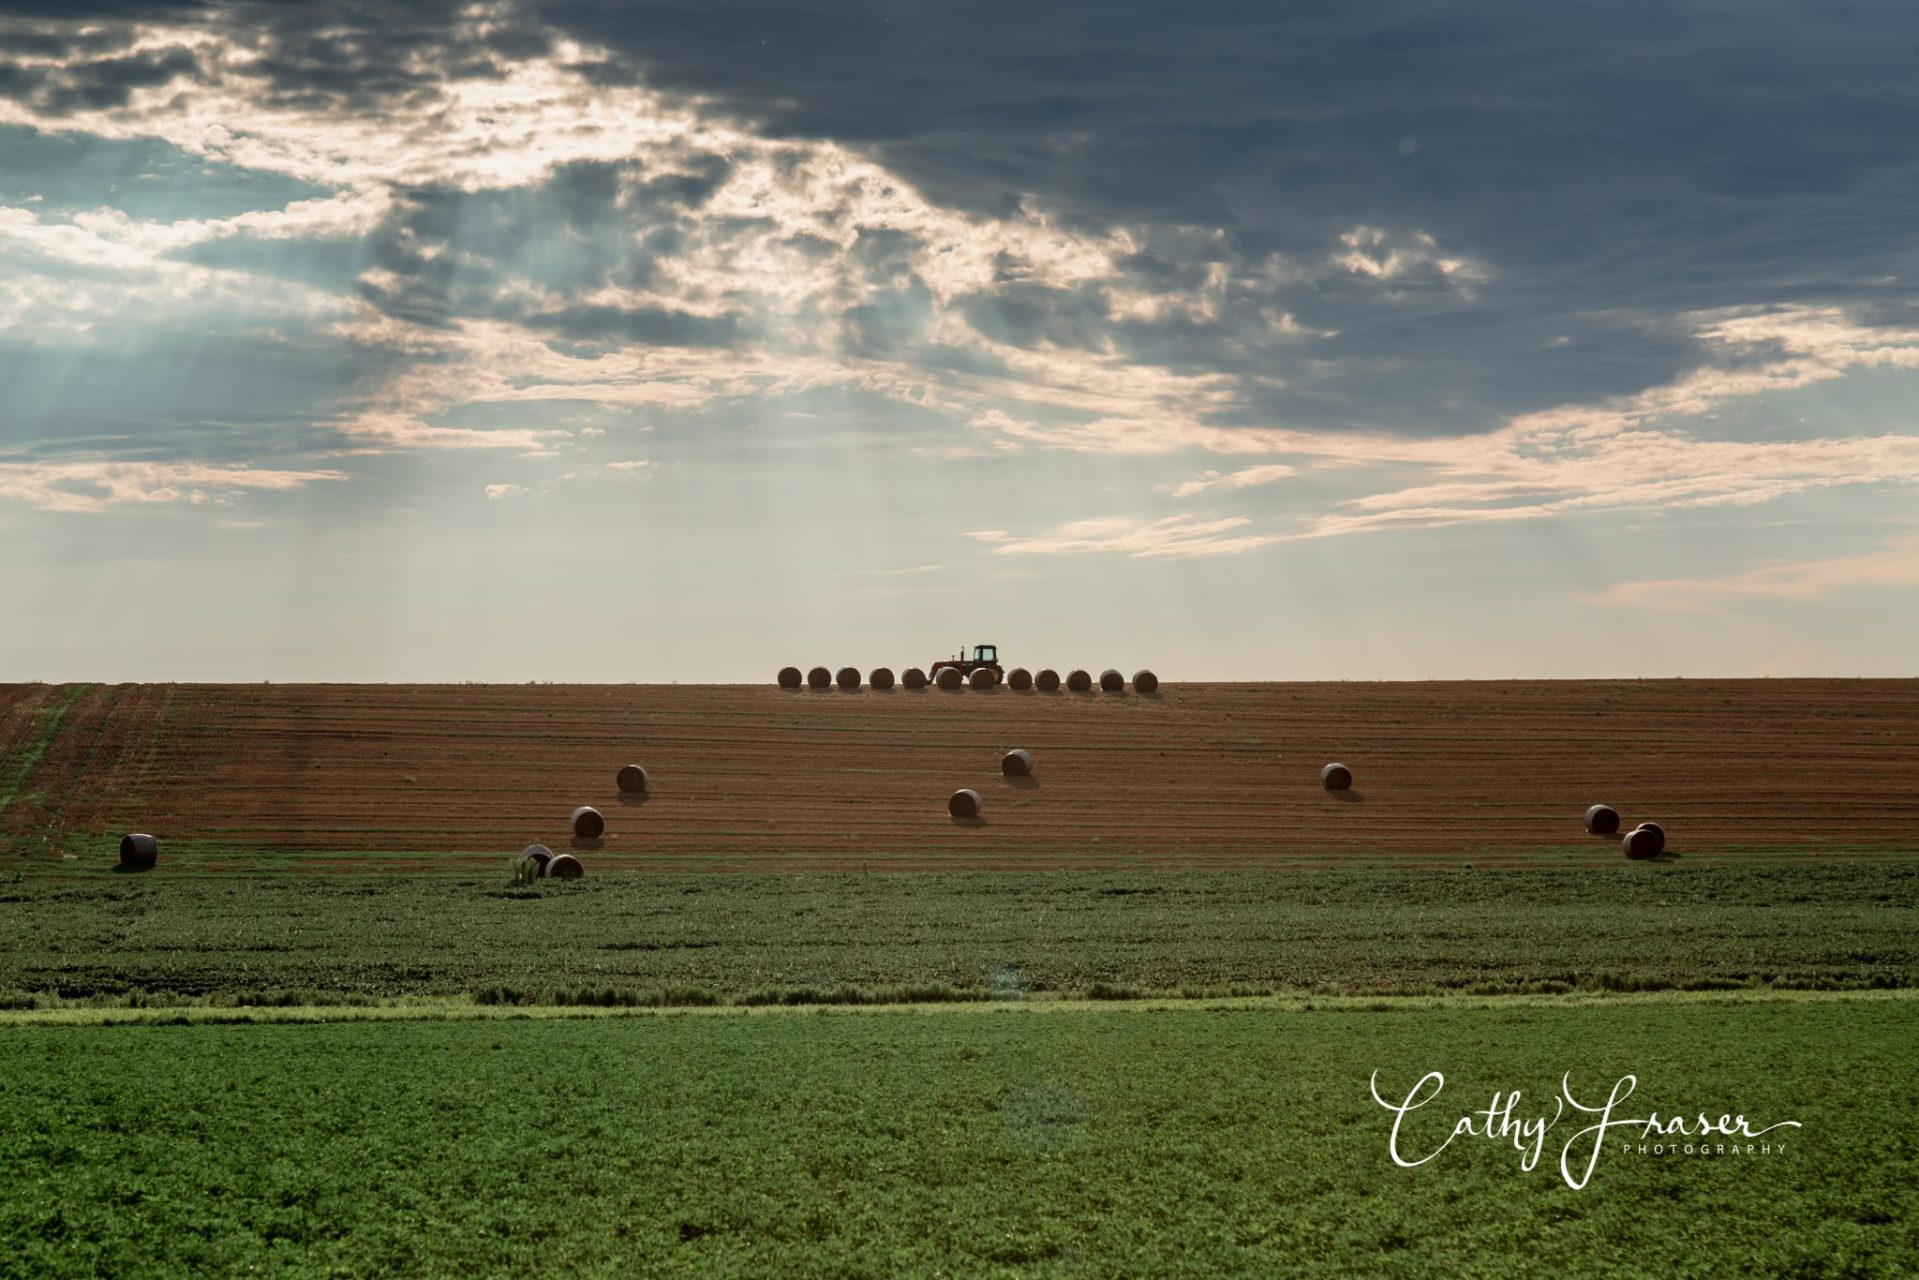 landscape photography of a farm with a tractor and bales of hay in new york